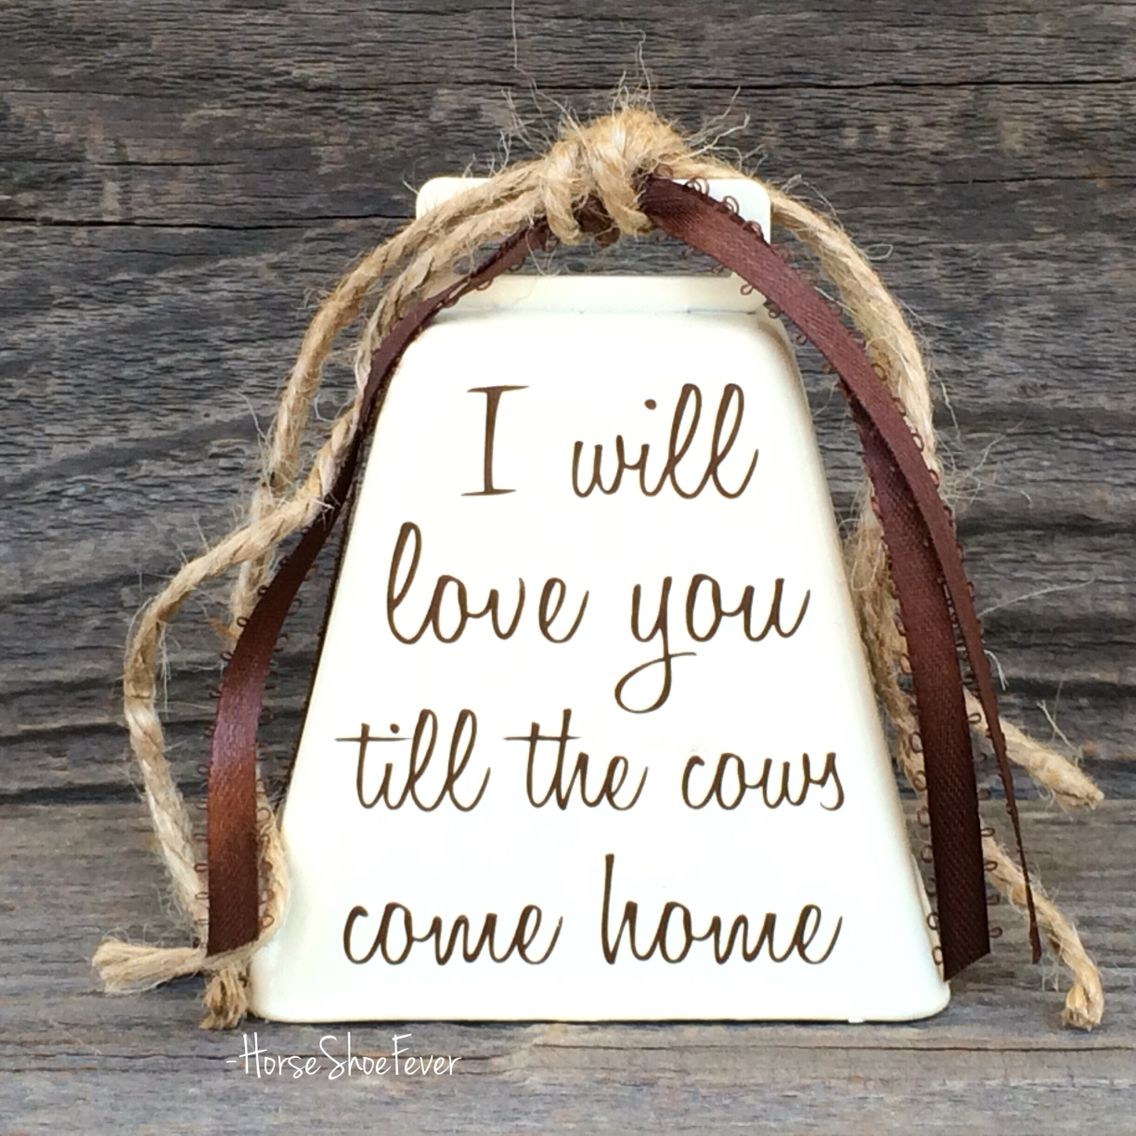 Cowboy Kitchen: Cowbell Decor. HorseShoeFever On Etsy. Cowgirl, Cowboy